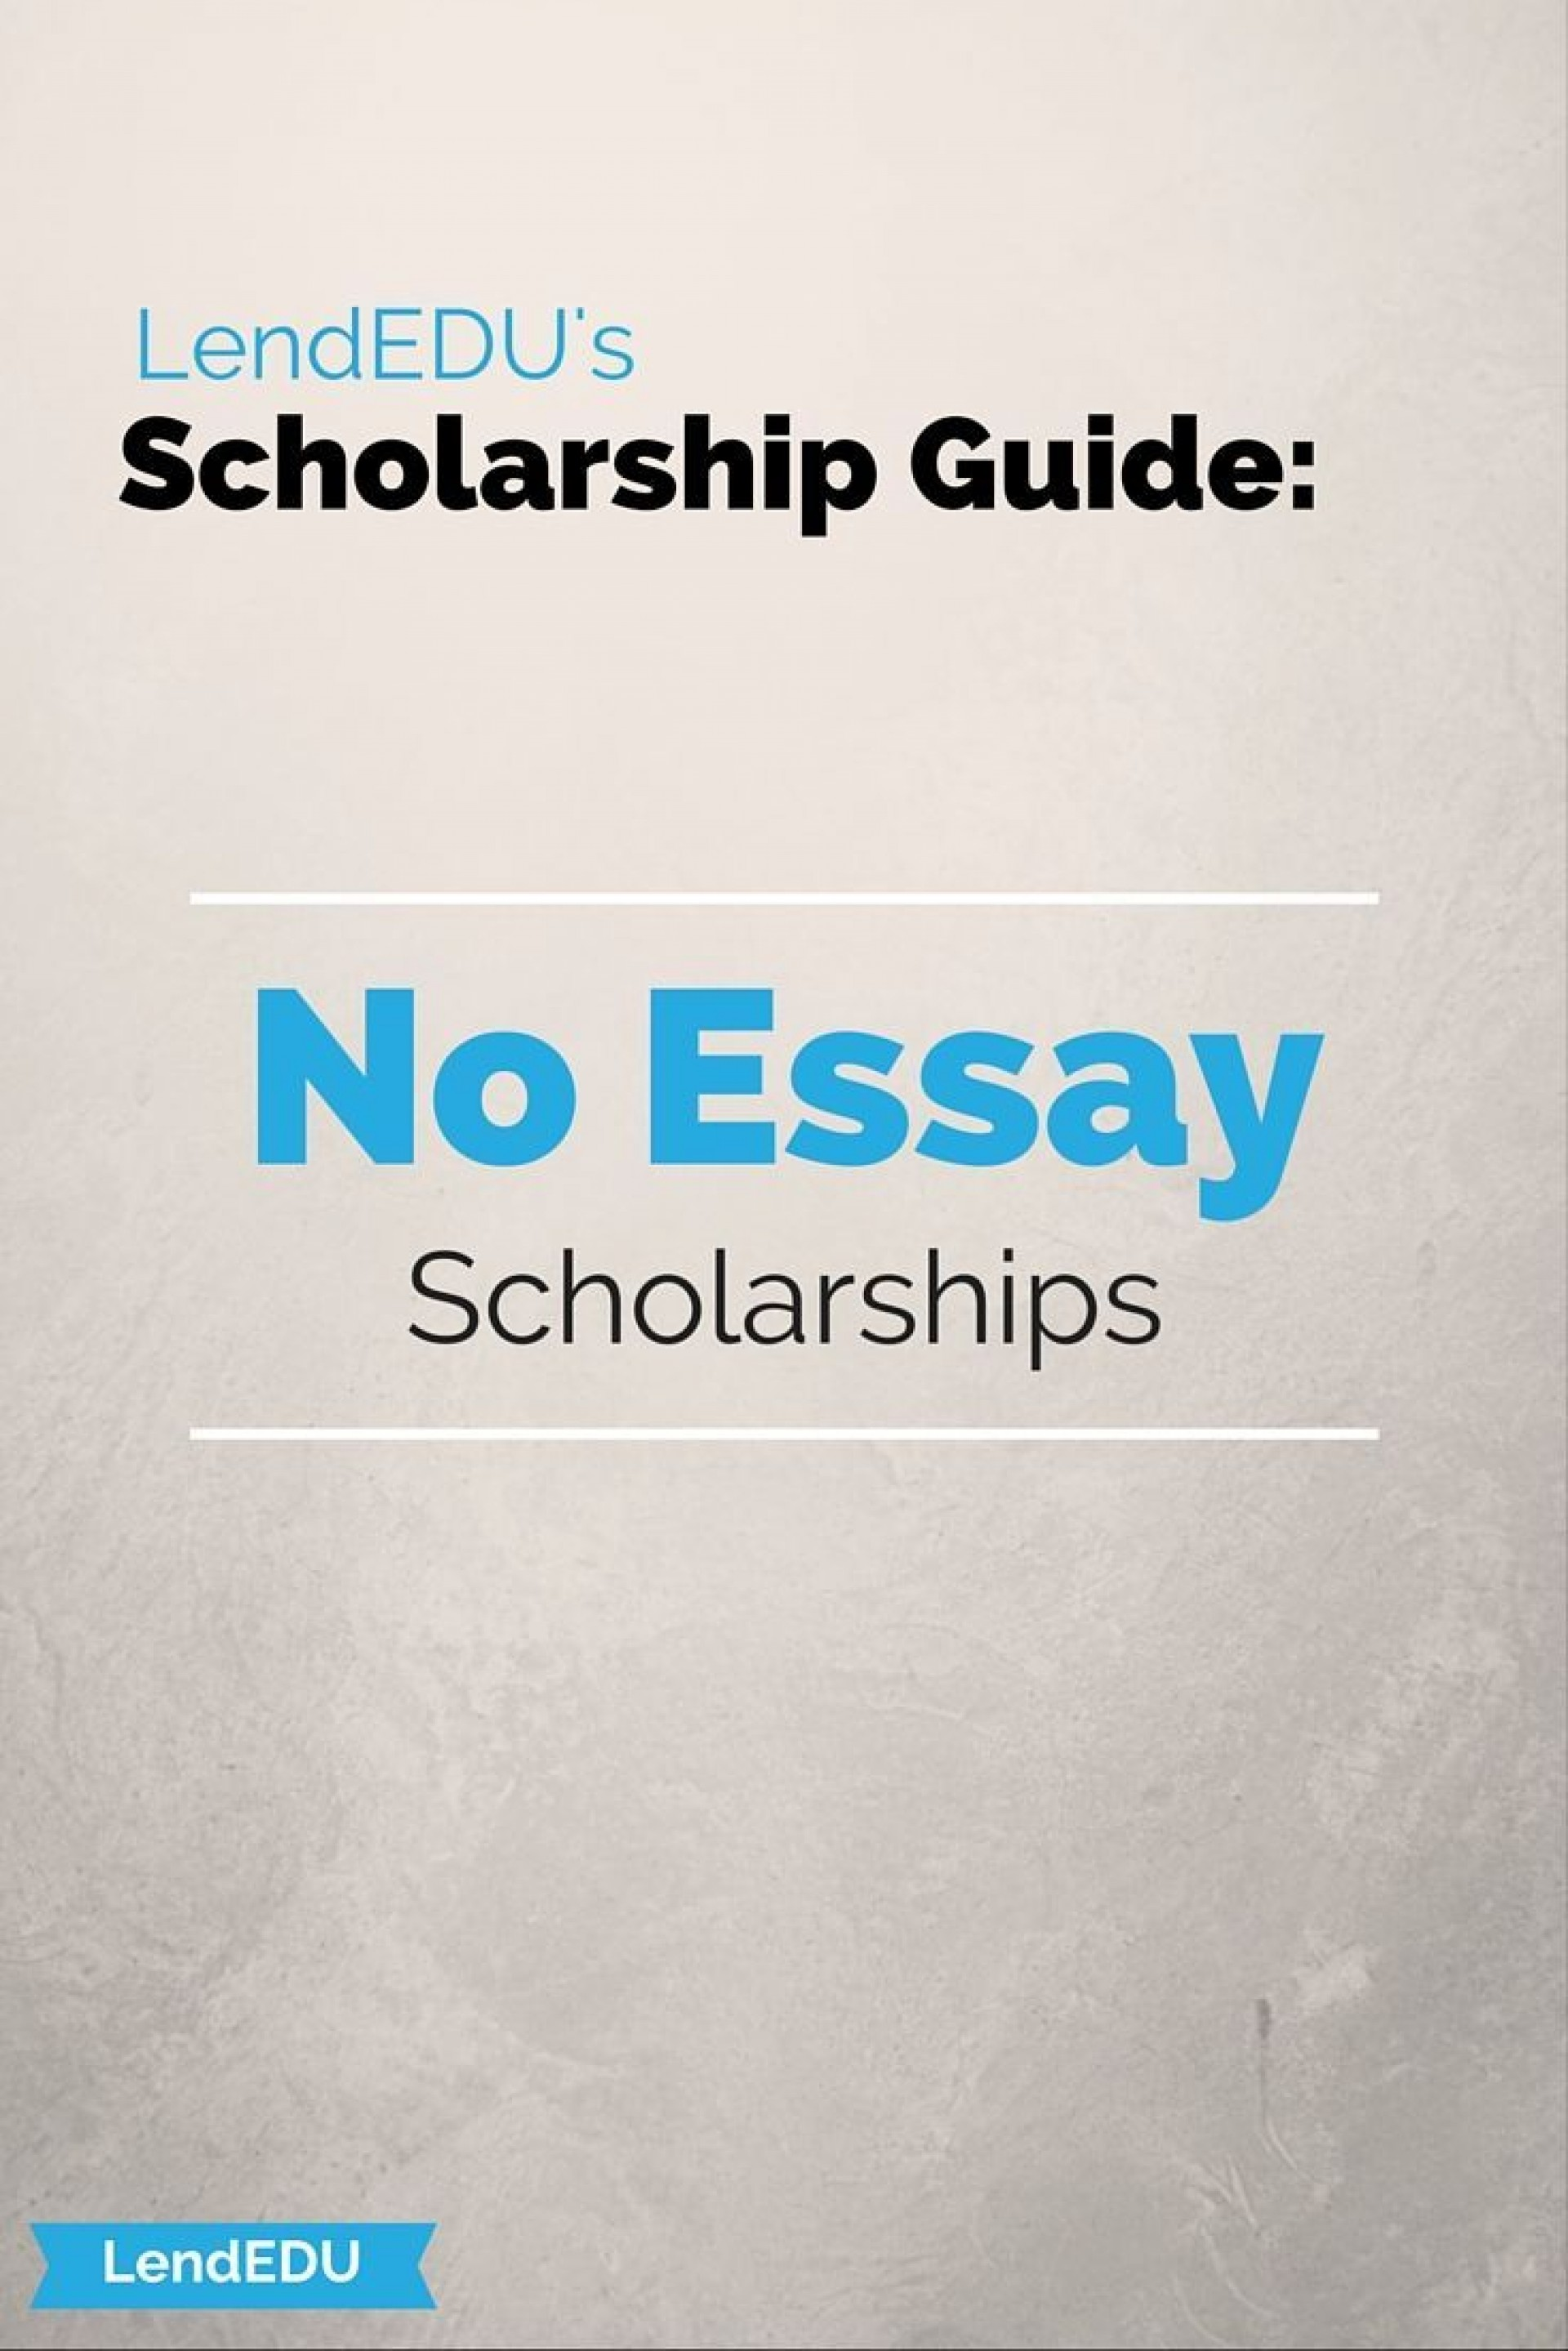 009 Essay Example Non Imposing Scholarships For High School Freshman No College Students 2019 1920